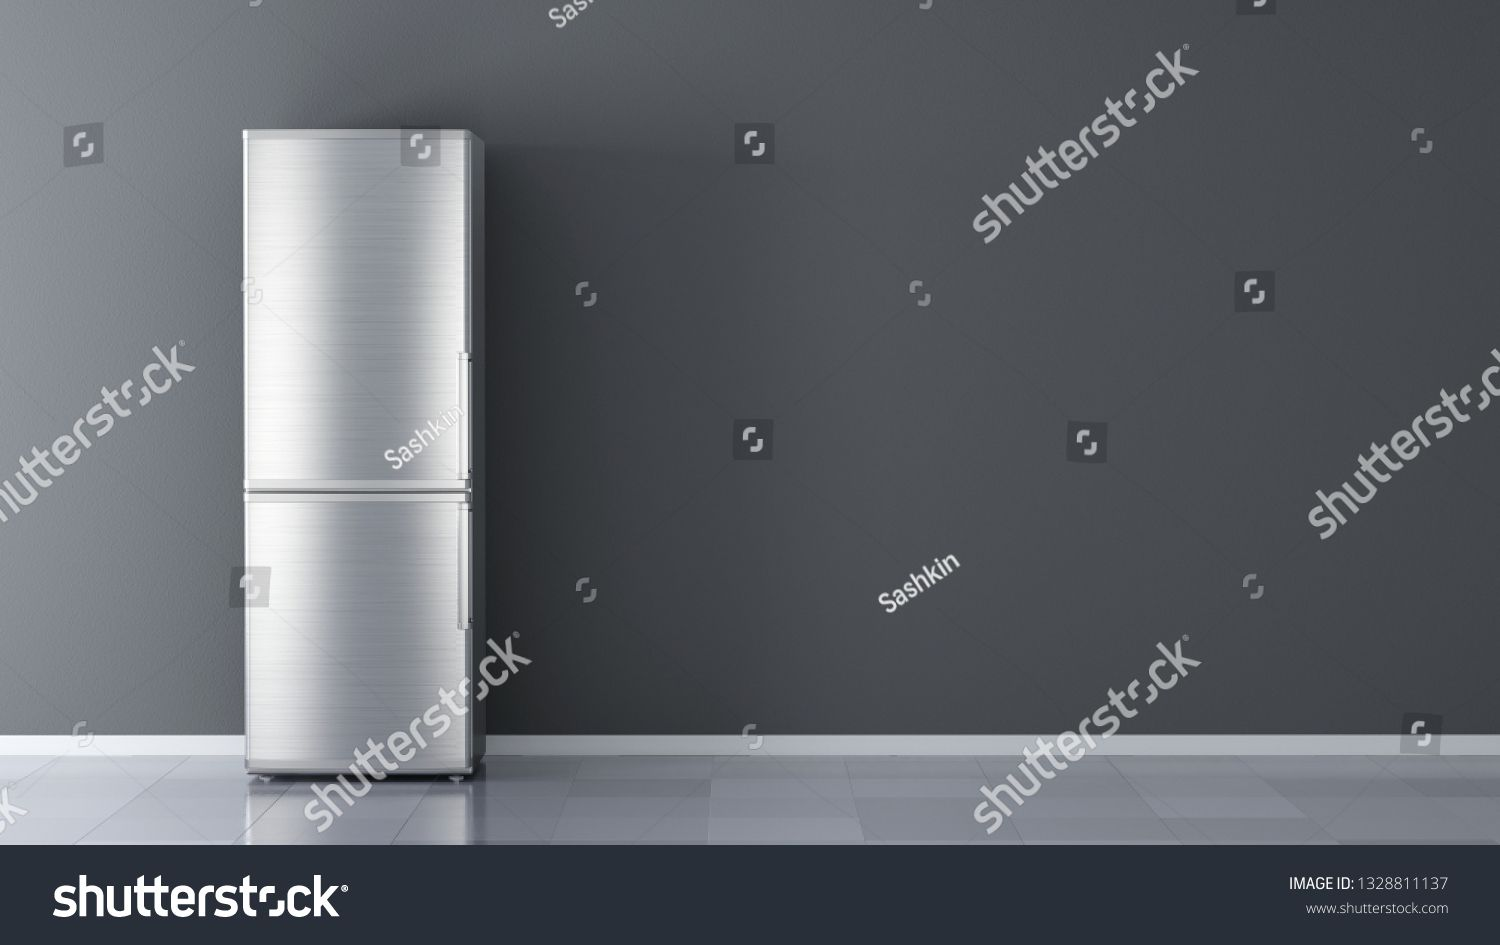 Modern Stainless Steel Refrigerator Fridge Freezer Isolated On A White Background 3d Rendering Sponsored Stainless Steel Refrigerator Fridge Freezers Steel